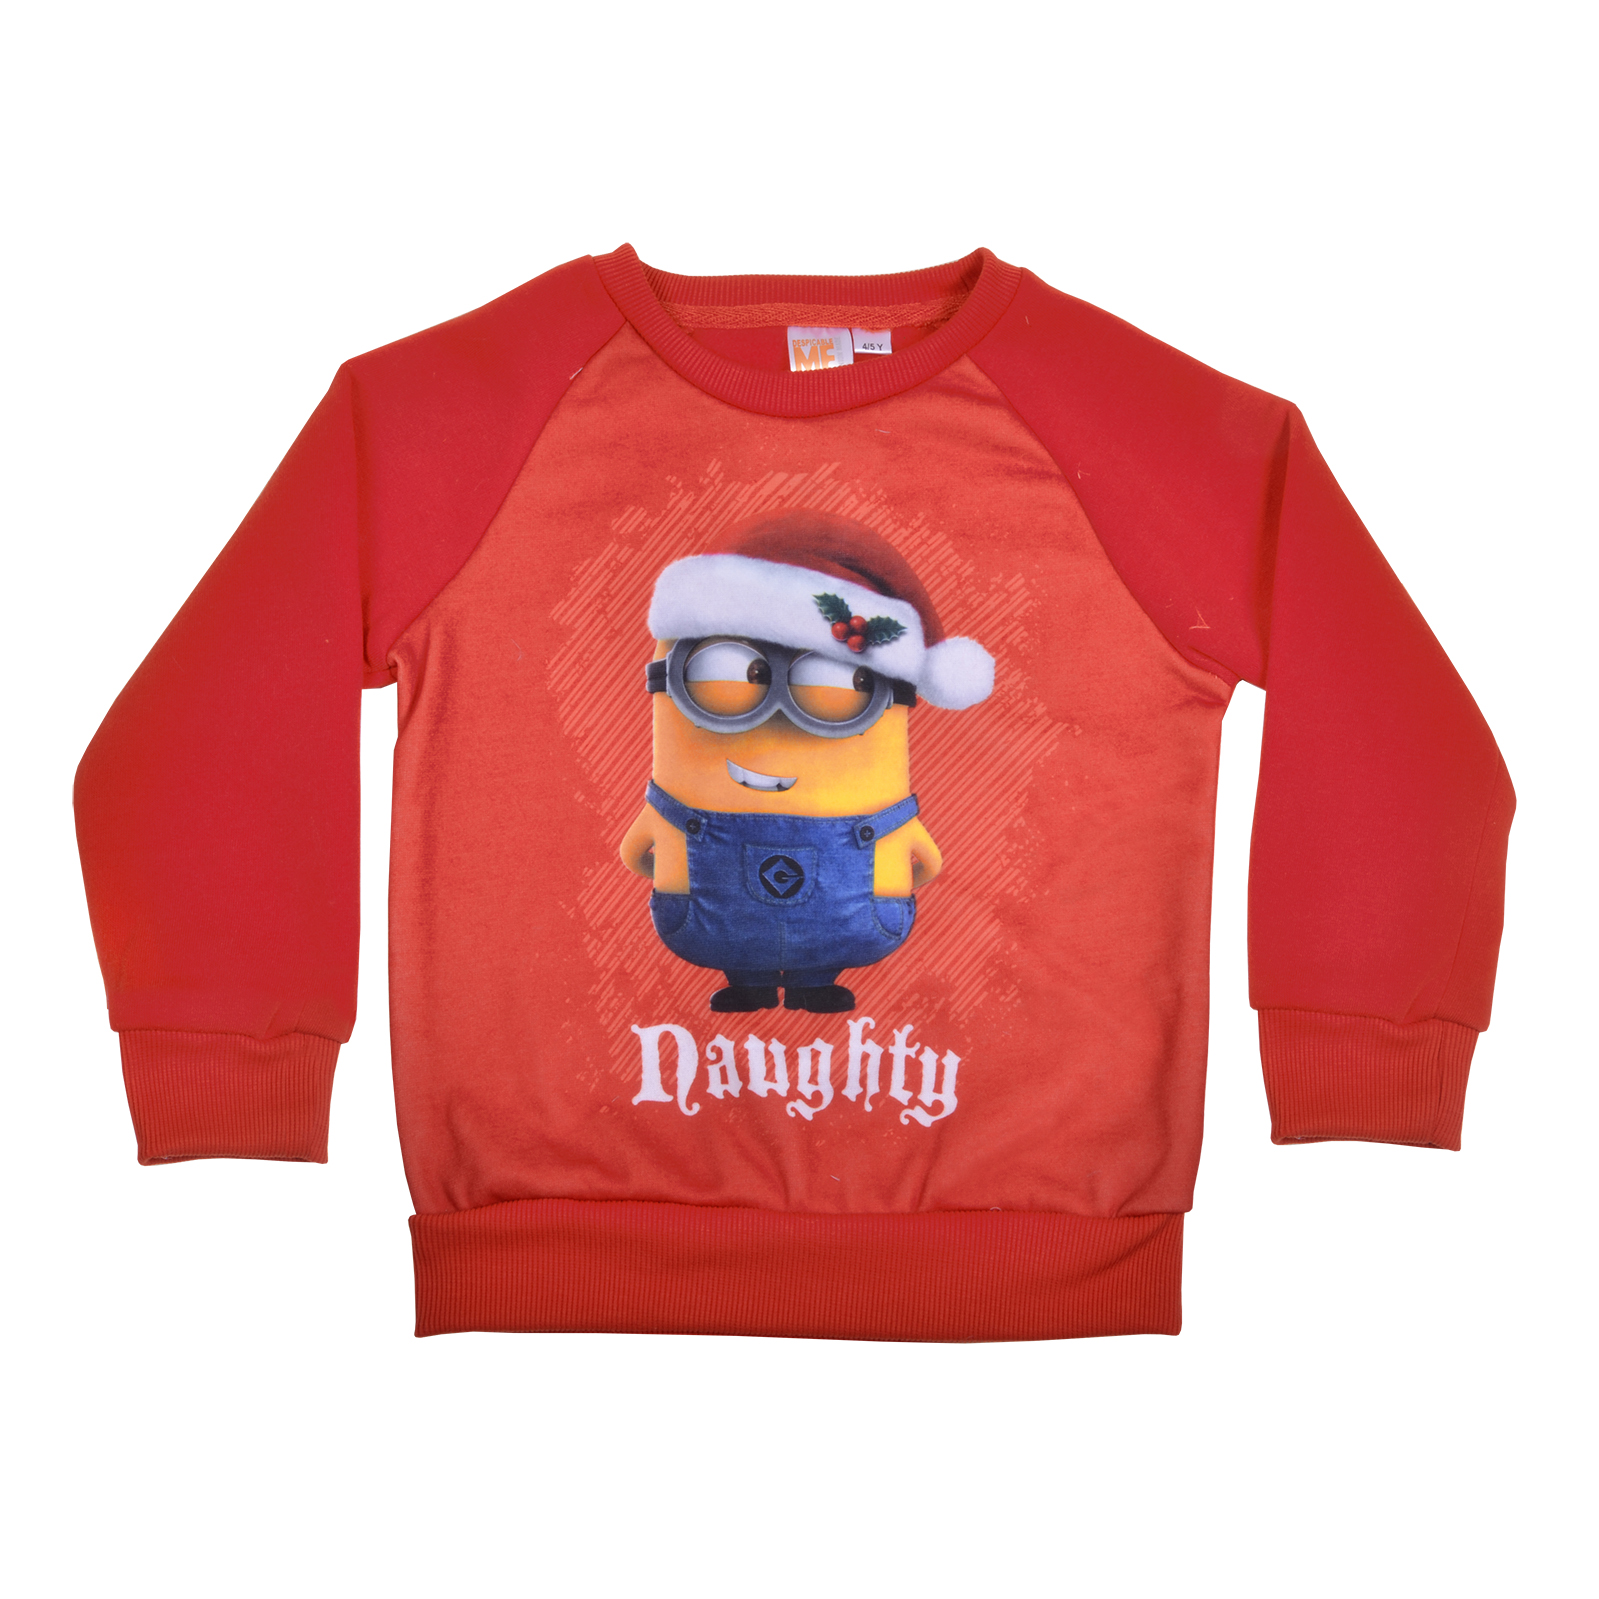 Girls Christmas Xmas Jumper Sweater - Despicable Me Minion Riding ...